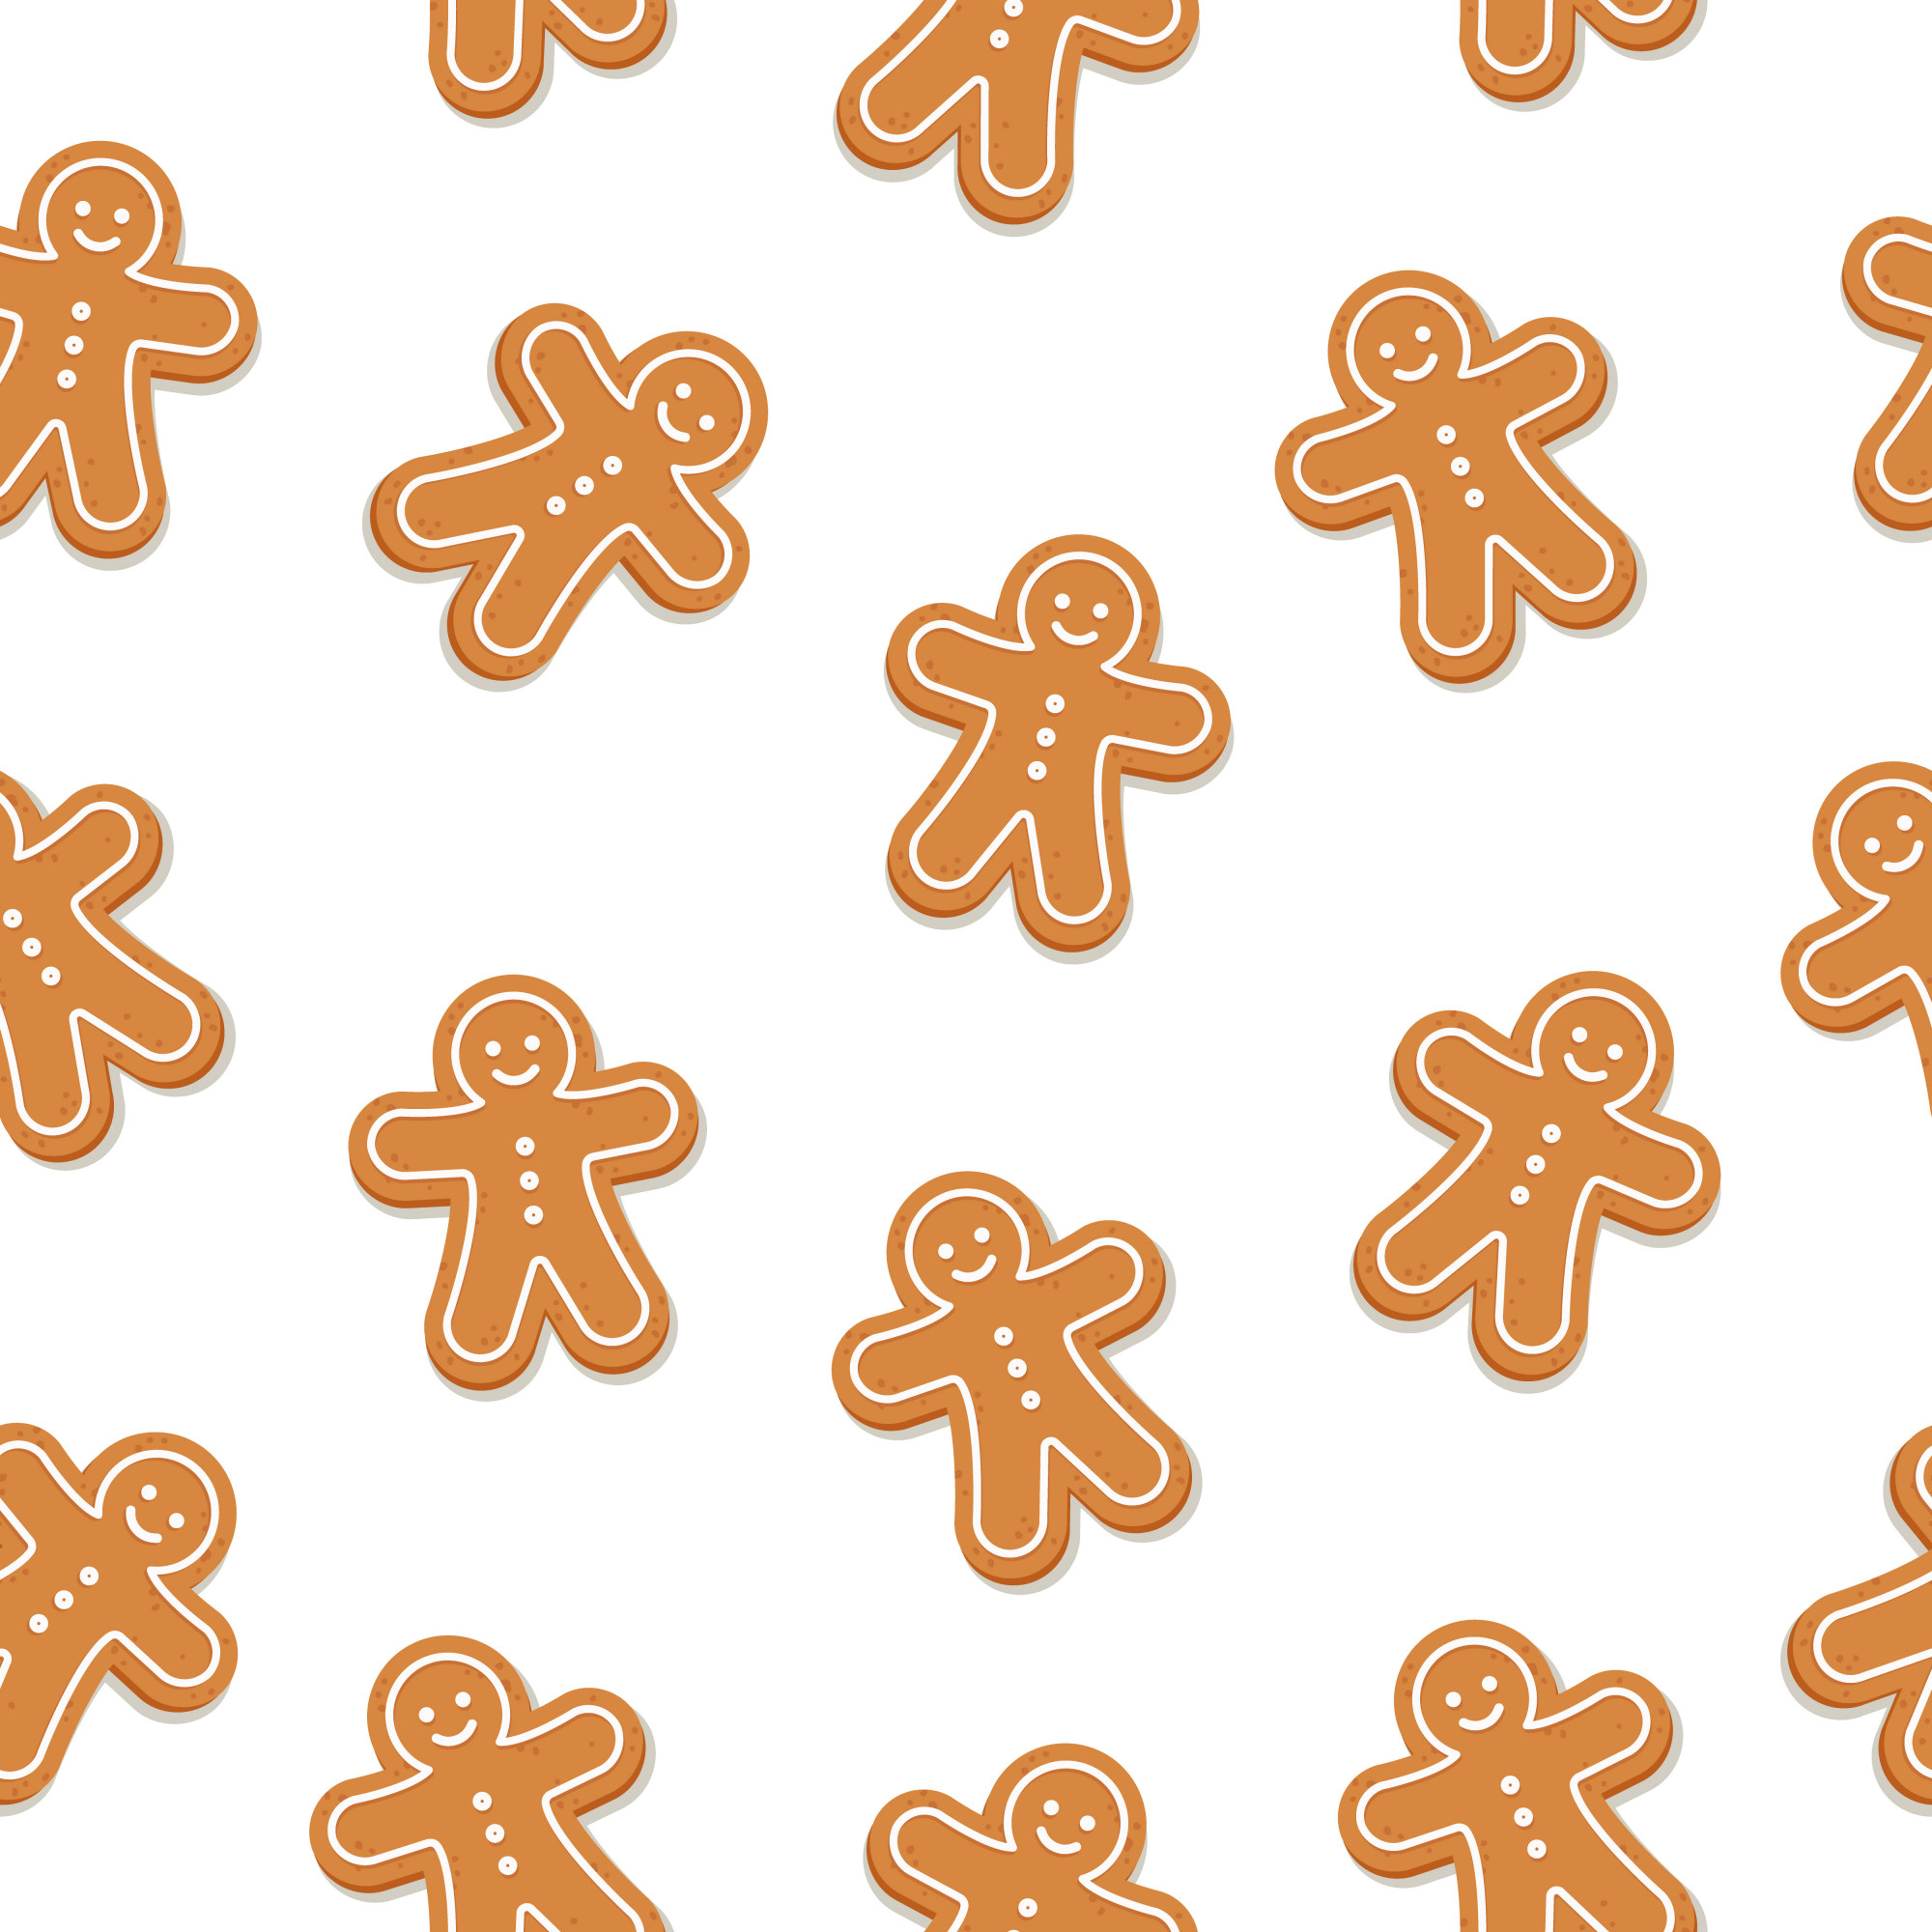 Gingerbread man cookie seamless pattern isolated background